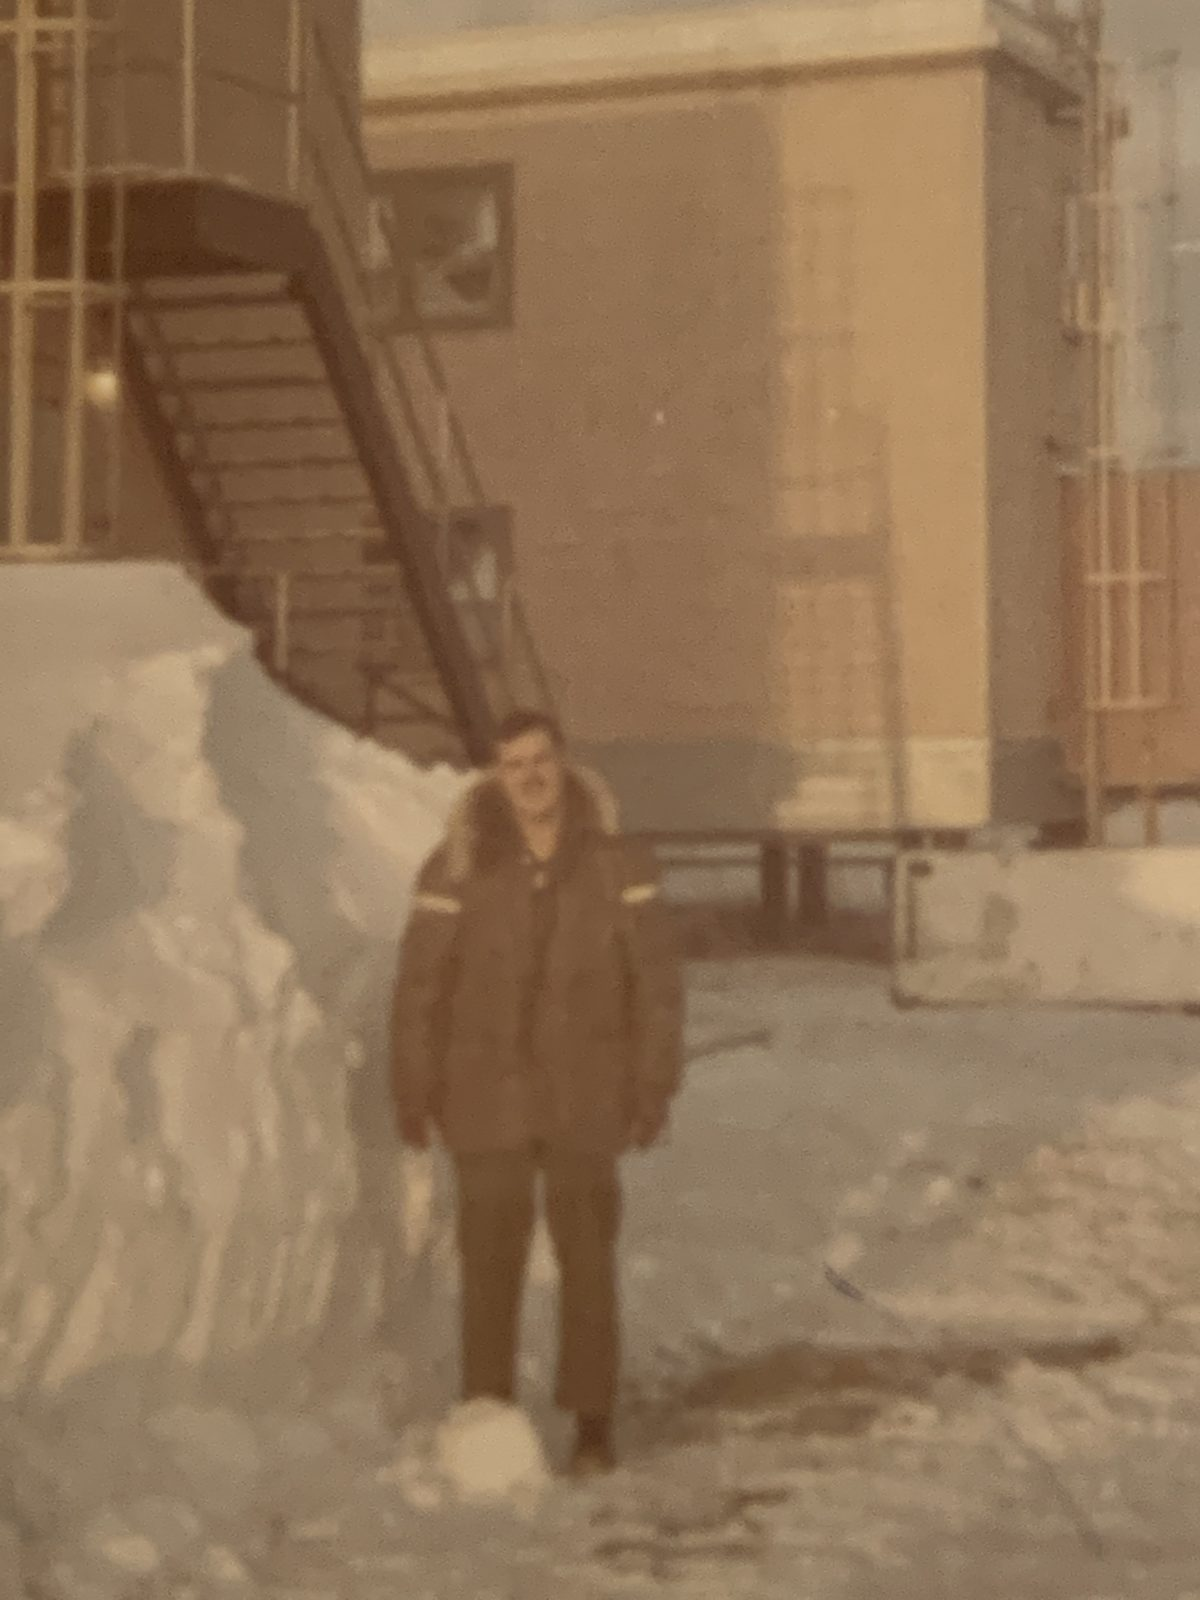 A photo of a giant snow pile inspires a lifetime of protecting Alaska.